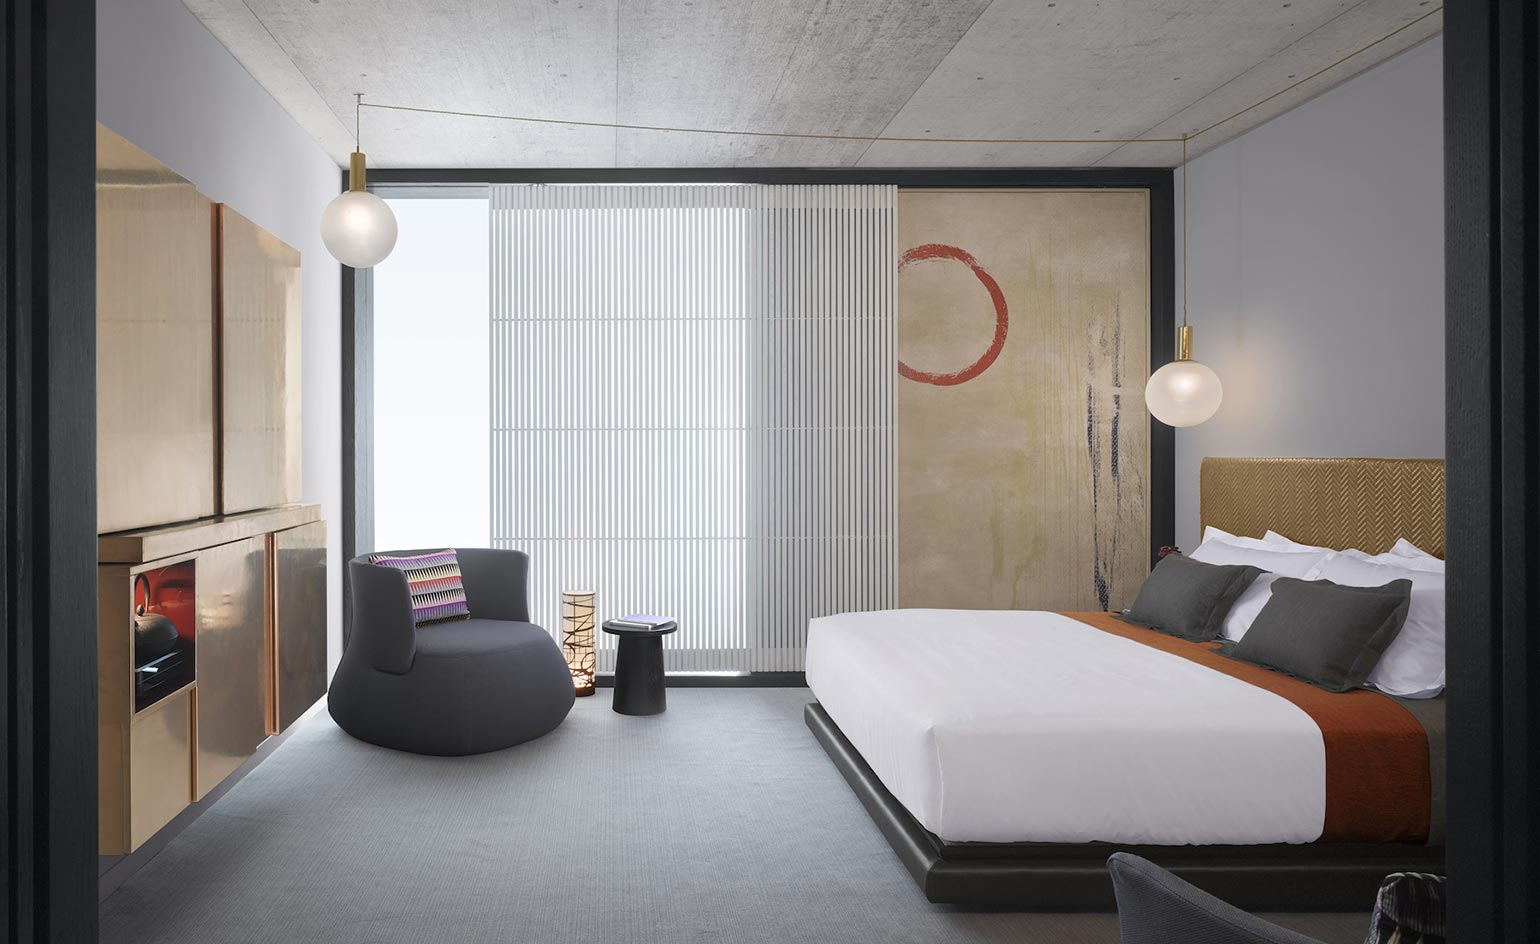 Nobu hotel shoreditch hotel review london uk wallpaper for Shoreditch interior design